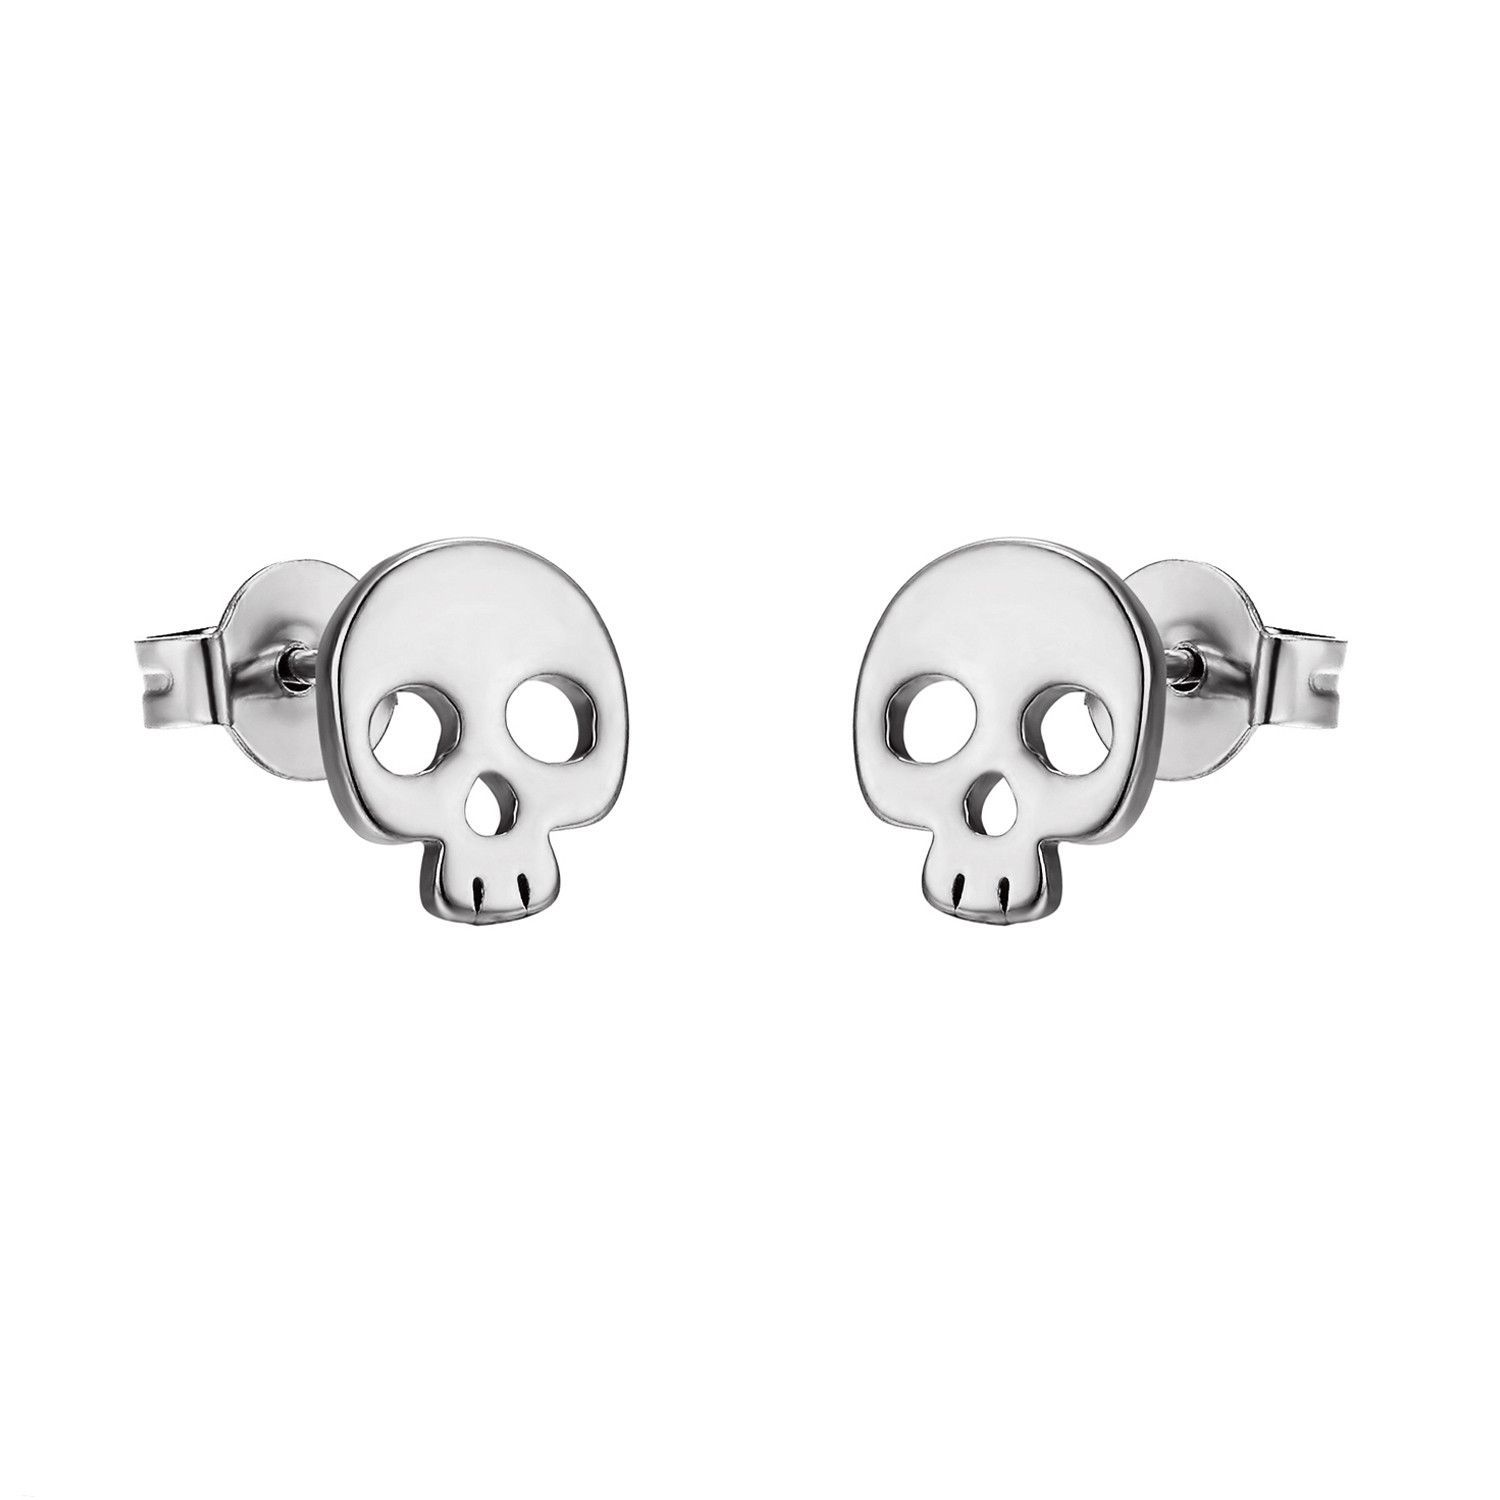 Stock V01yd 9252 Make Master Of Bling Style Earrings Dimensions Length X Width 9 Mm 7 Metal Stainless Steel One The Most Durable